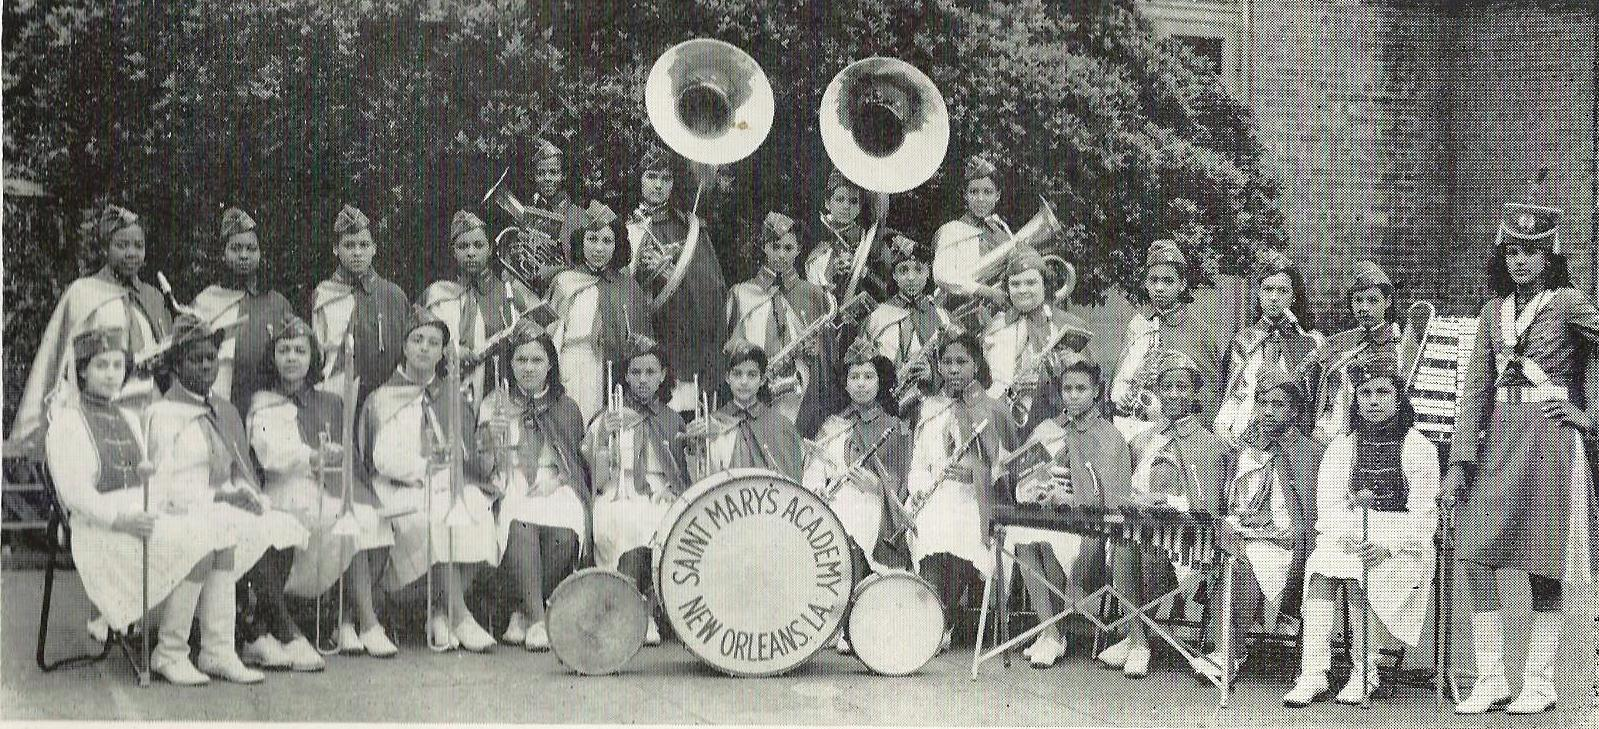 St. Mary's Academy's Band- 1944